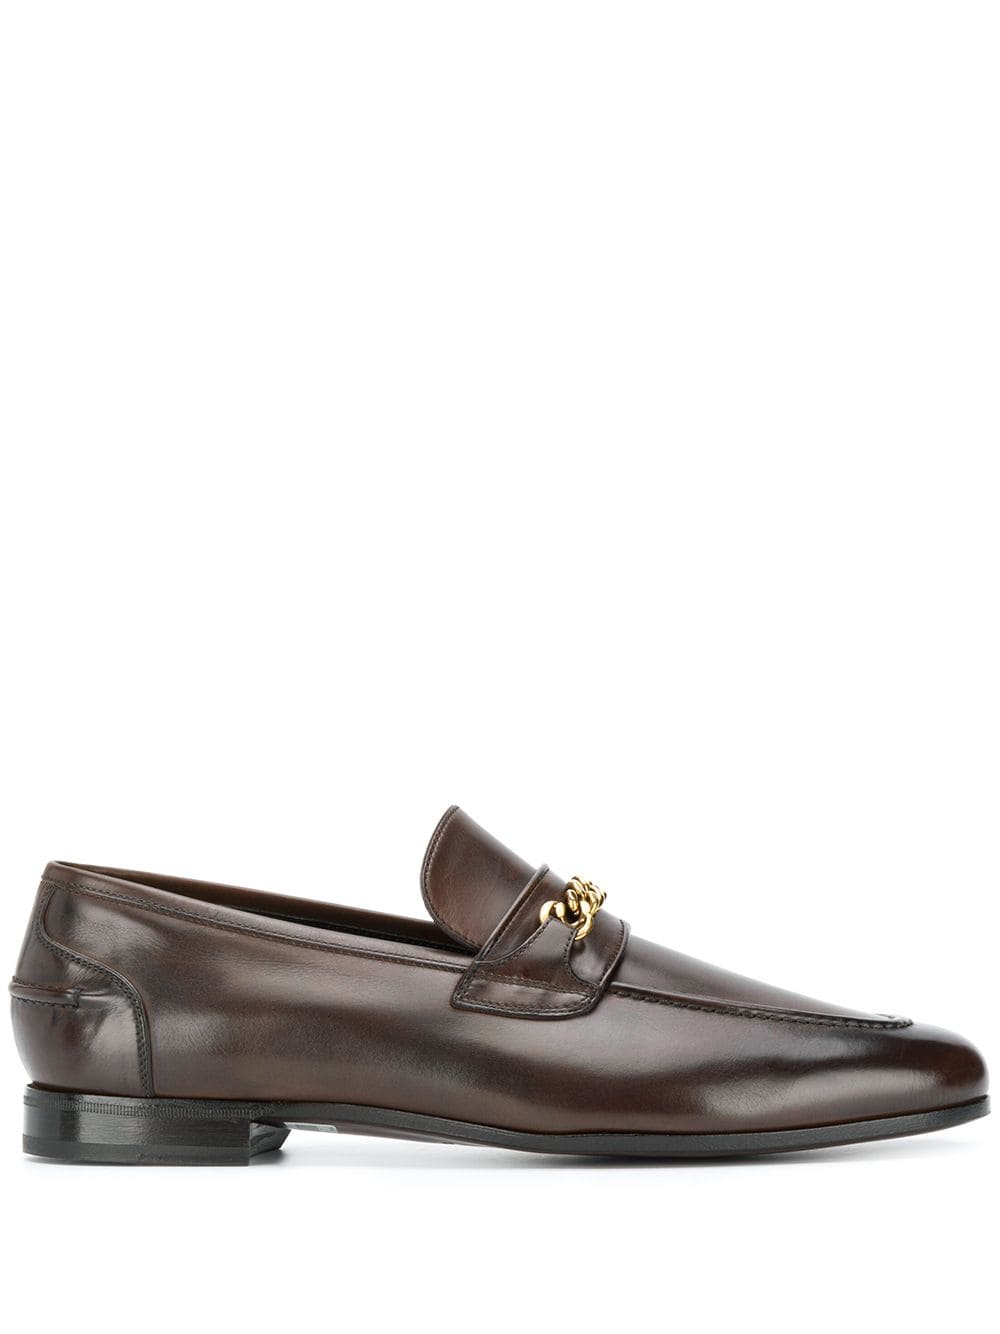 1035bc41948 Tom Ford Formal Loafers - Brown